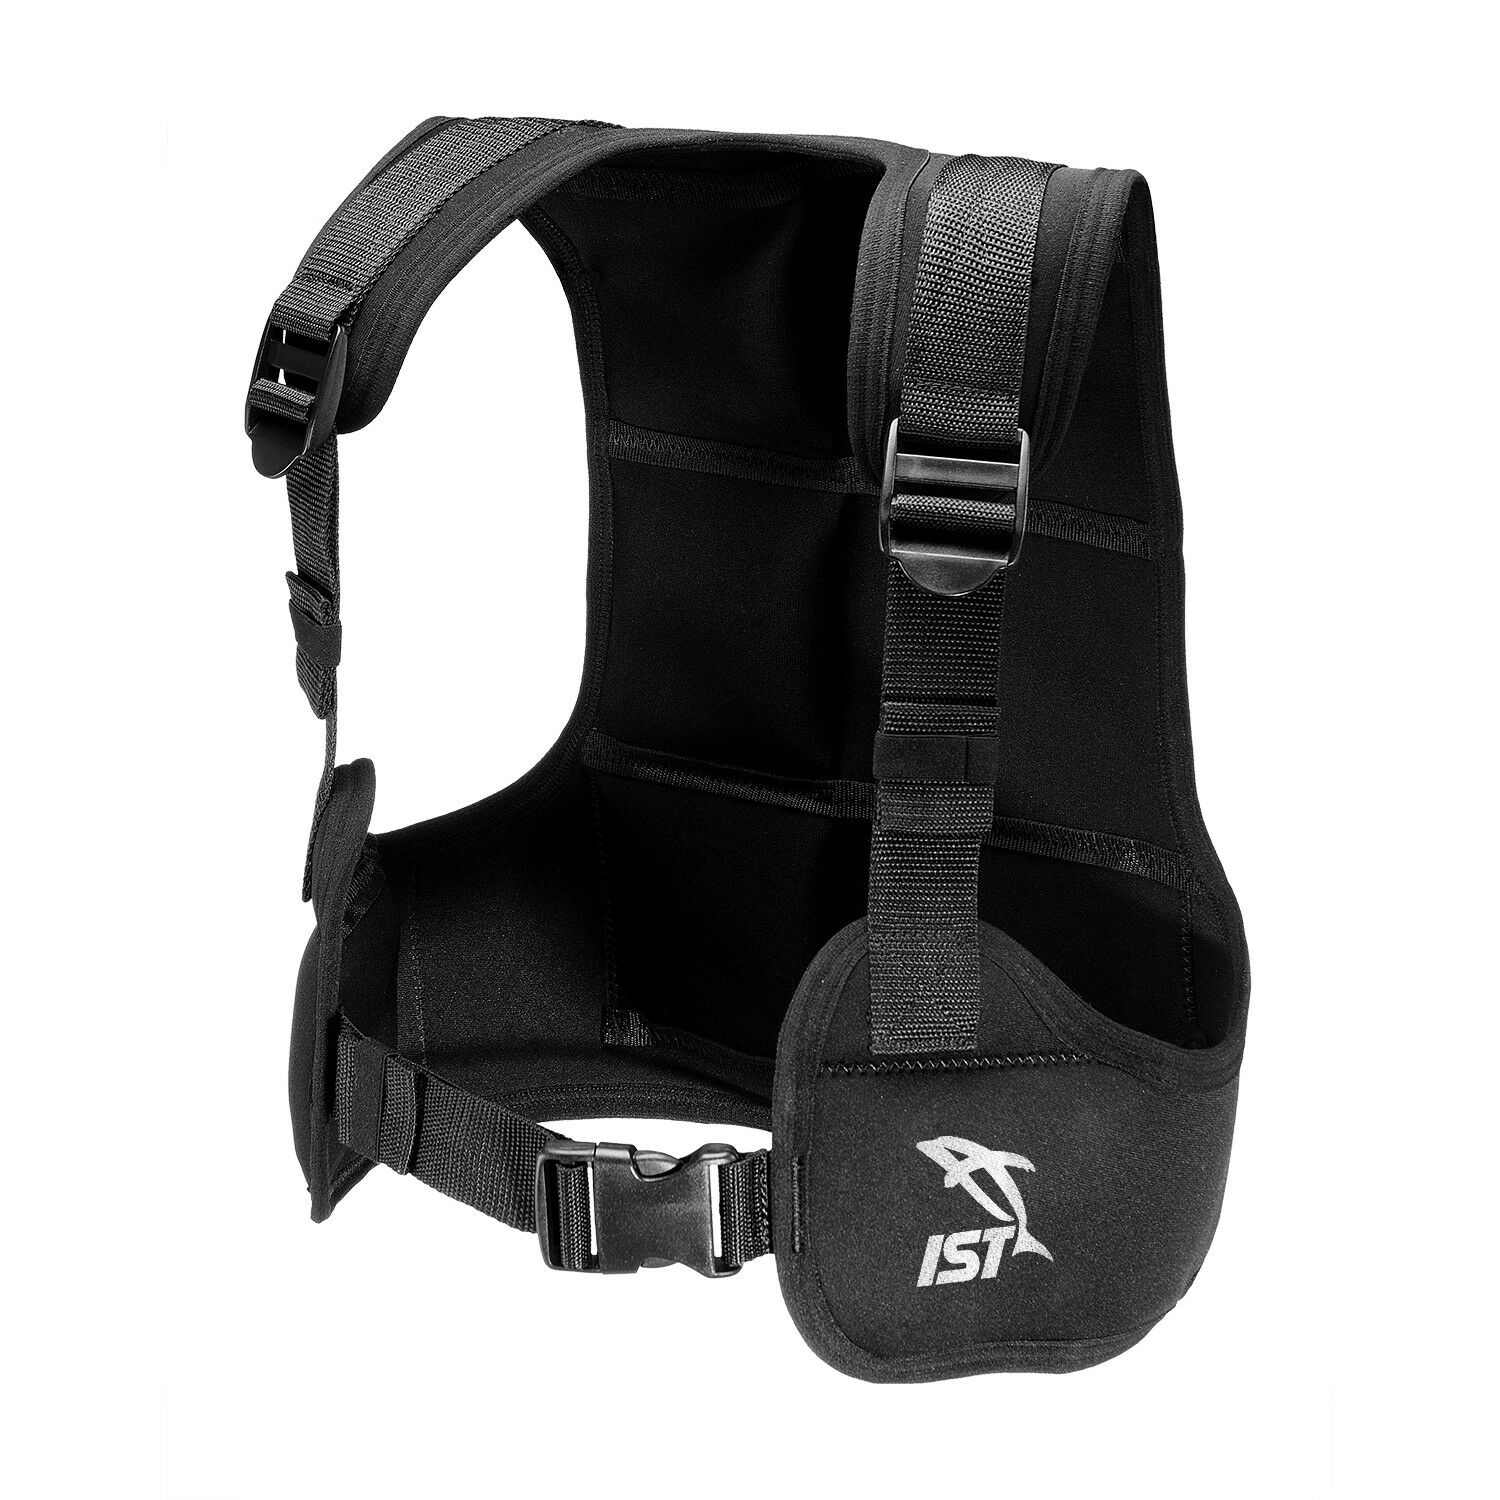 IST VSA0240 Free Diving   Apnea Weight Vest, Holds Up to 35lbs.